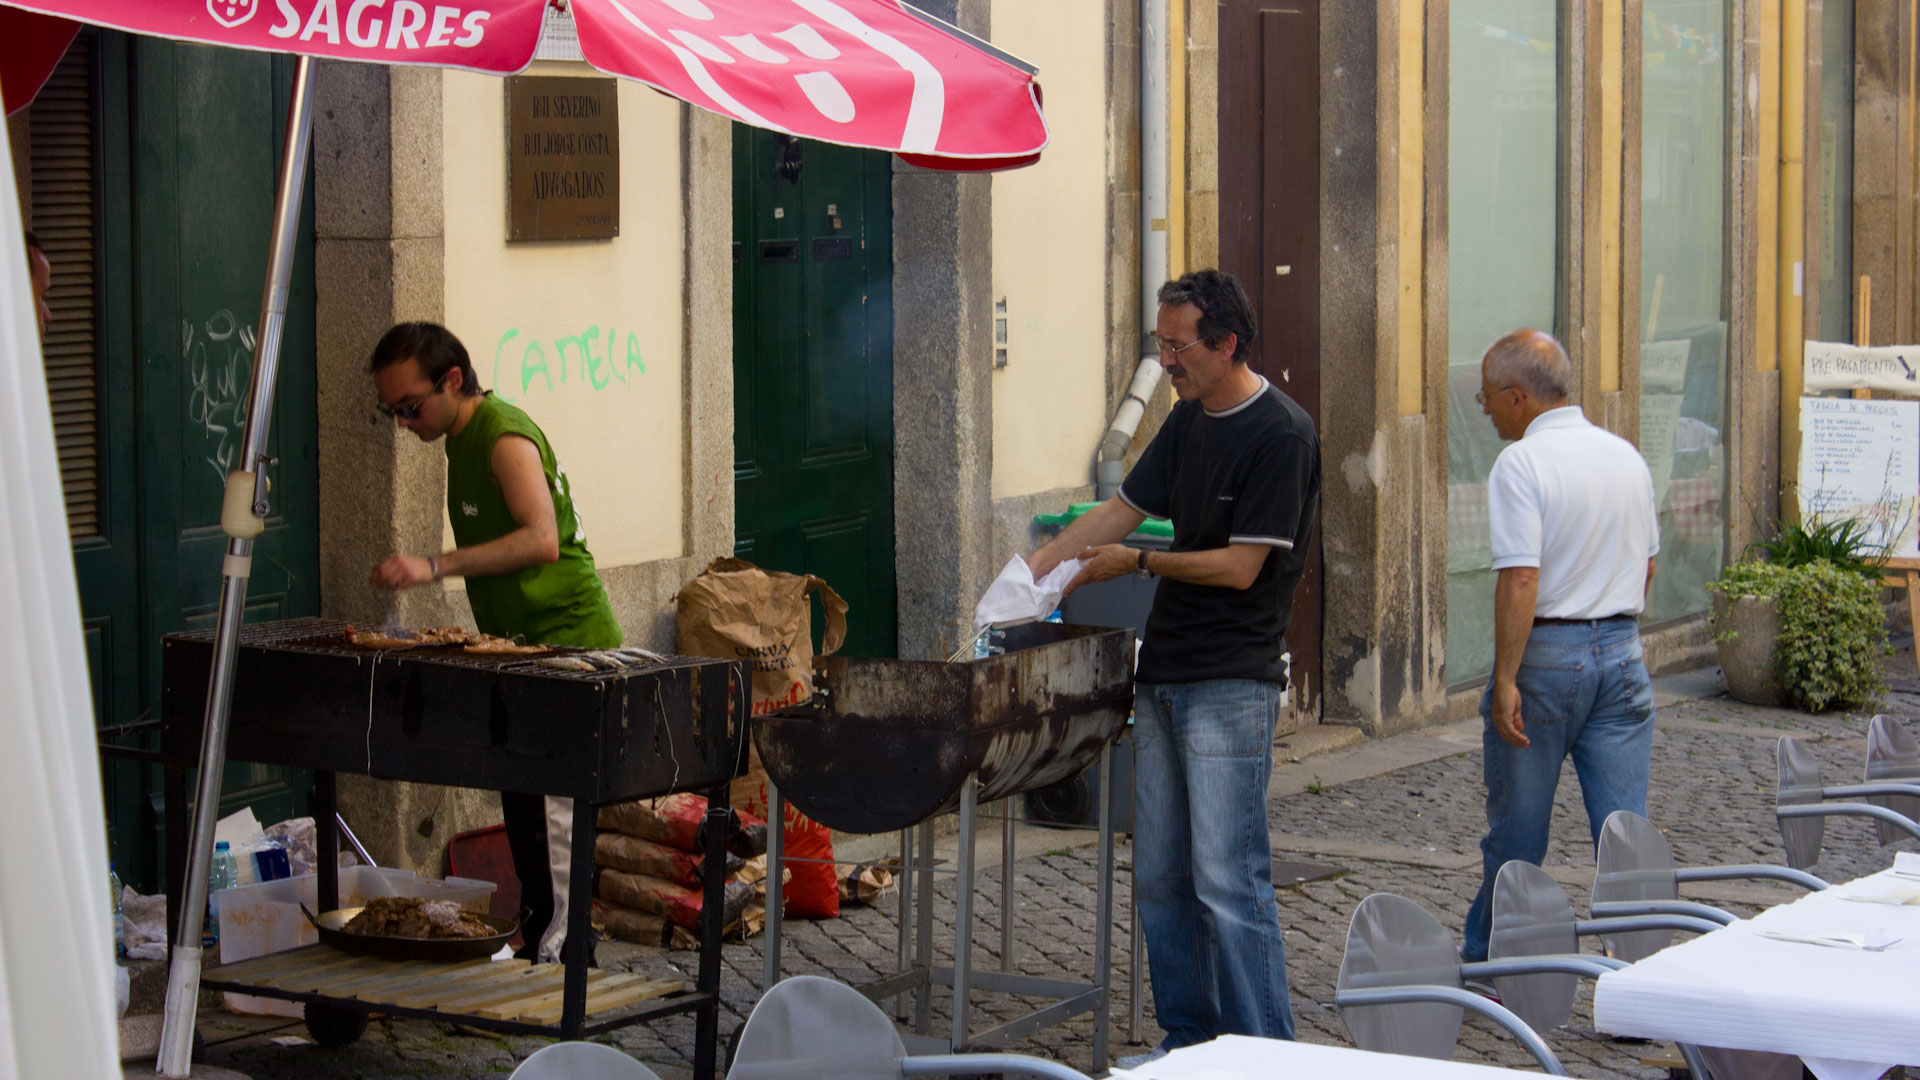 Barbeque in Portugal